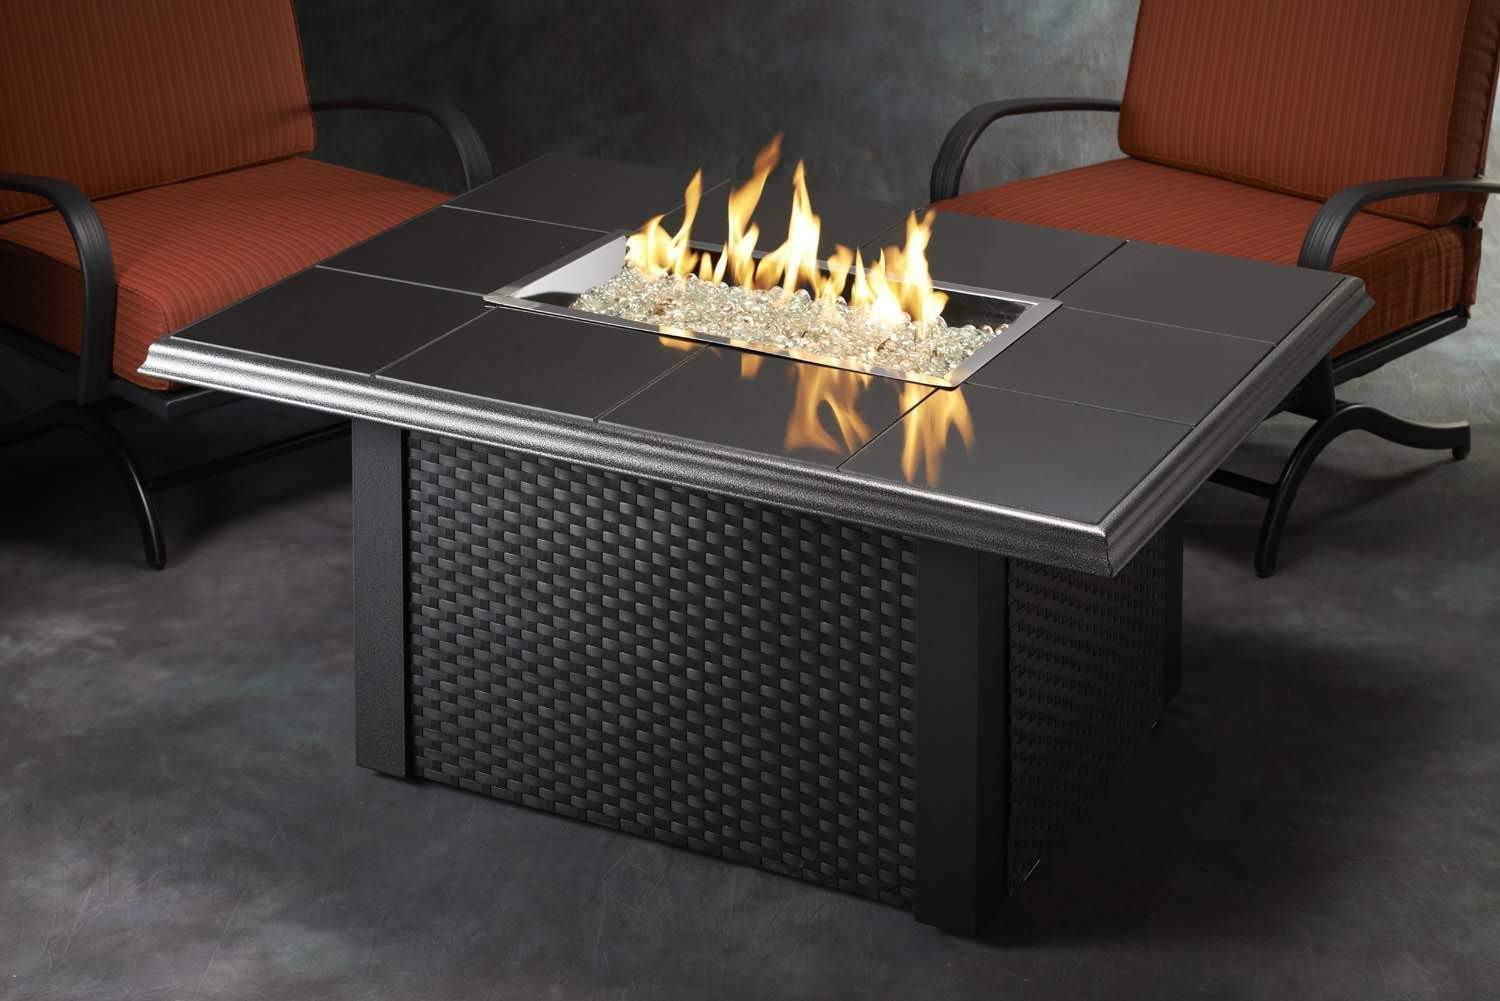 Best ideas about Propane Fire Pit Coffee Table . Save or Pin Outdoor Greatroom Napa Valley Gas Fire Pit Coffee Table Now.